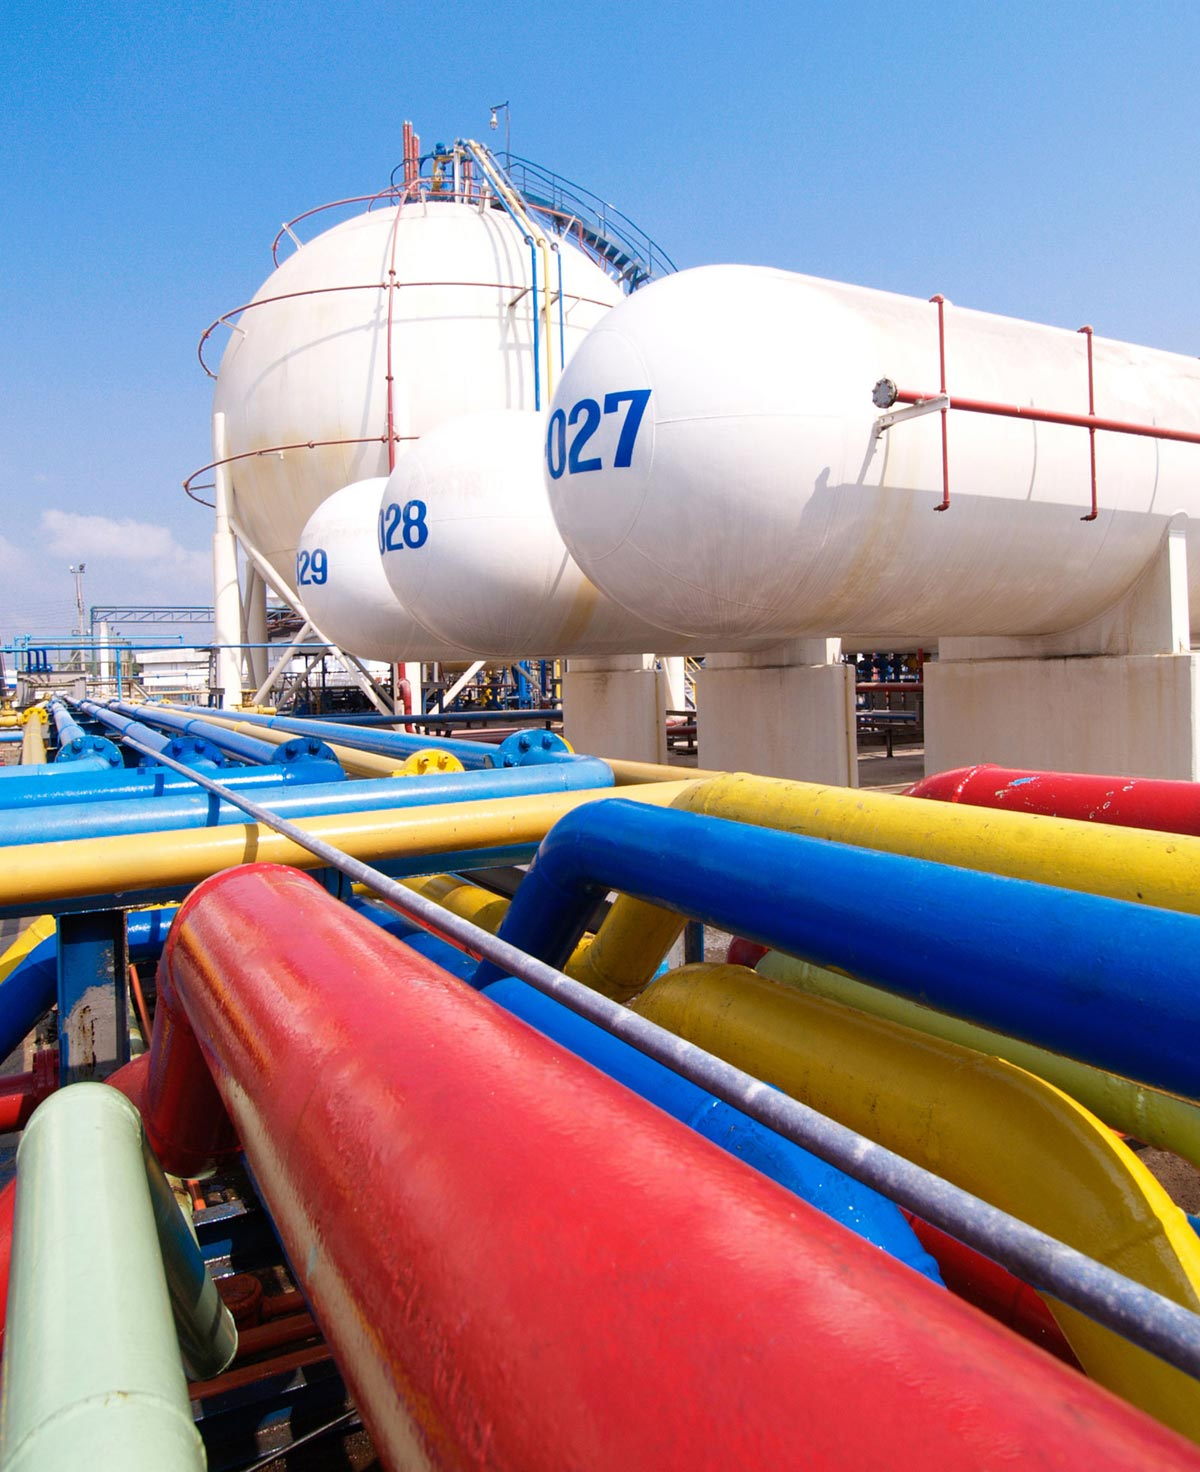 Pipe lines and gas tanks